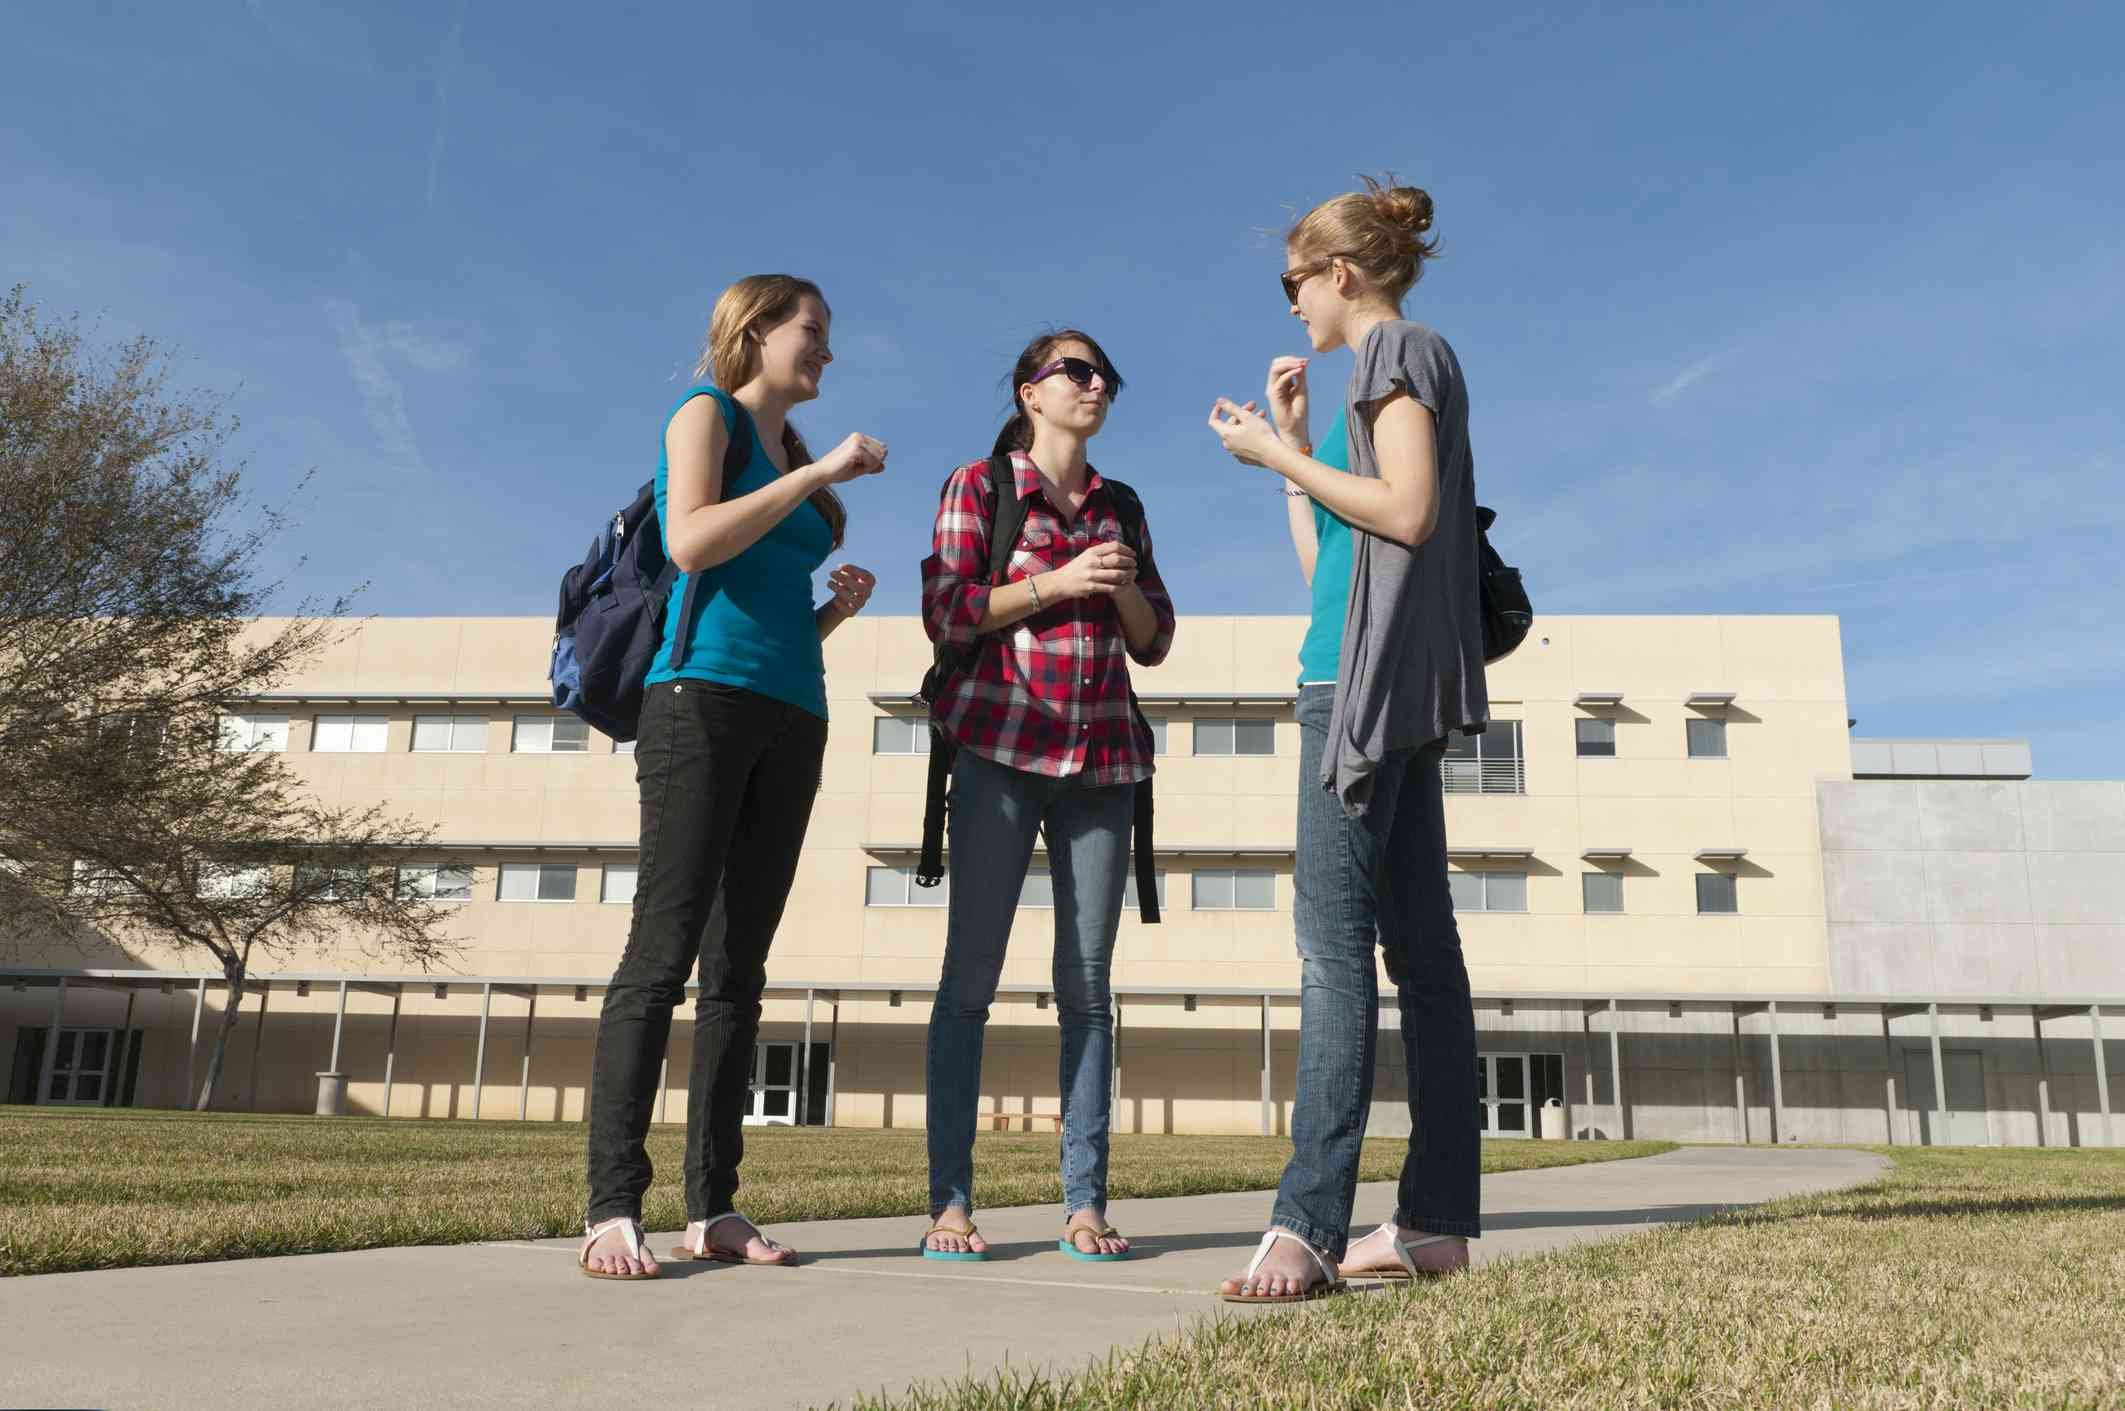 Three college-aged women having a conversation in ASL outside school